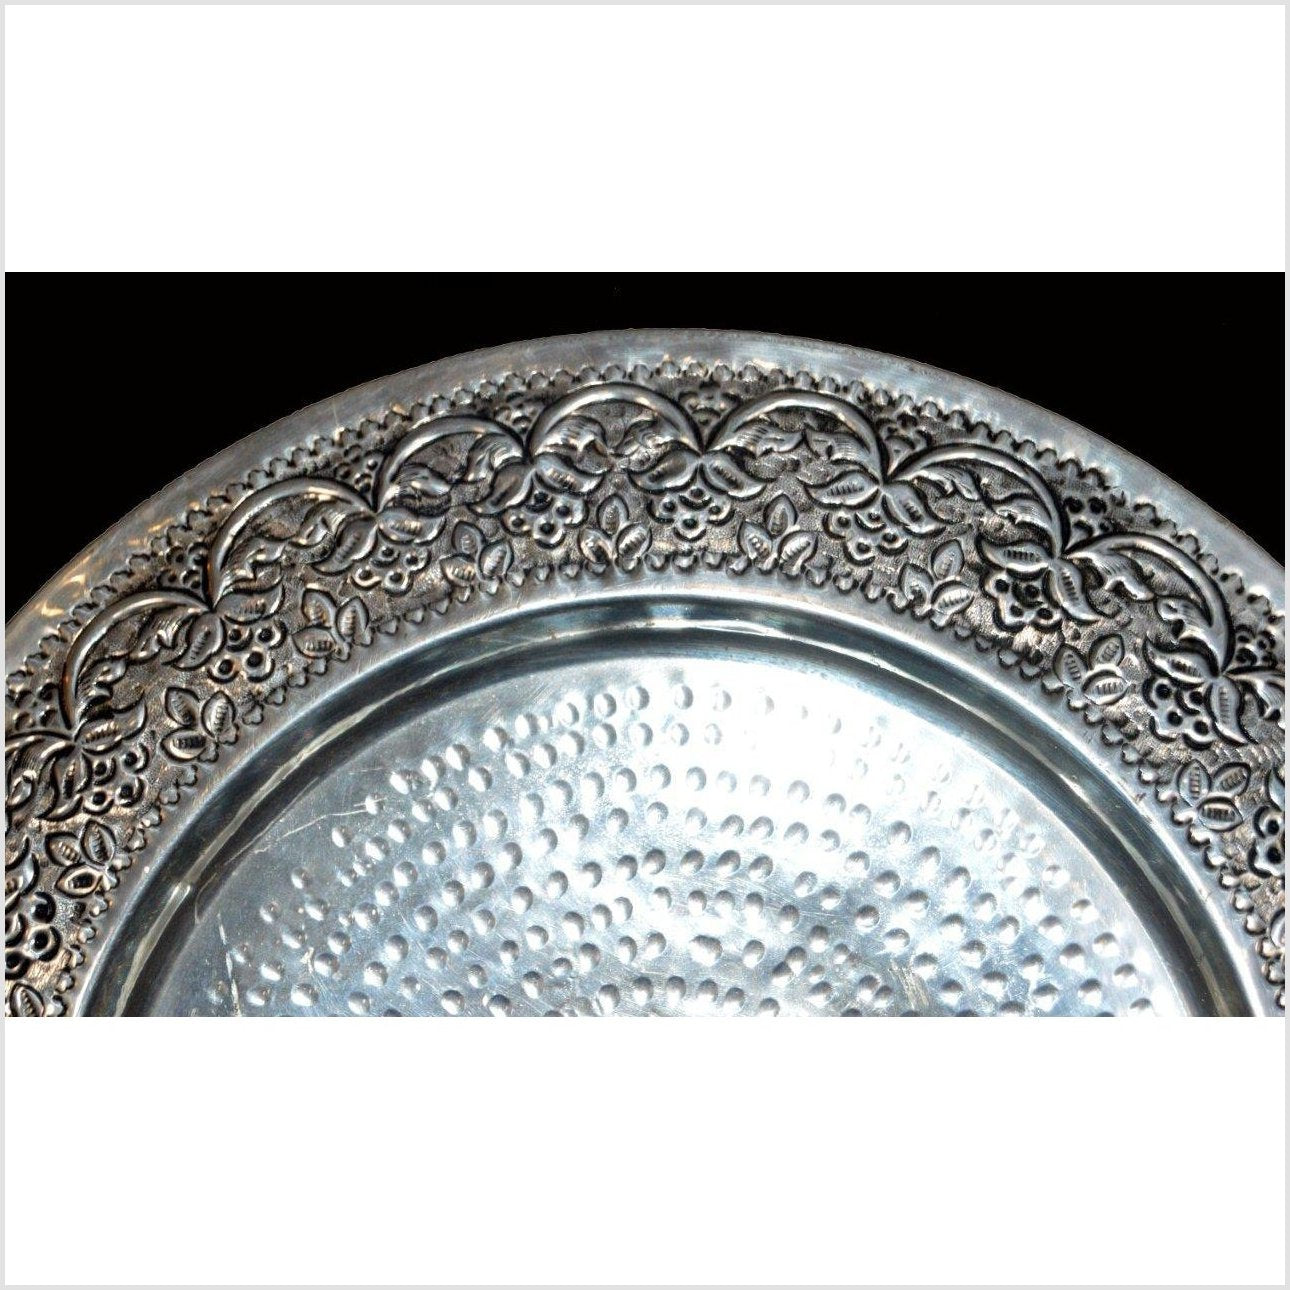 HAND TOOLED SILVER PLATED ORNATE CHARGER